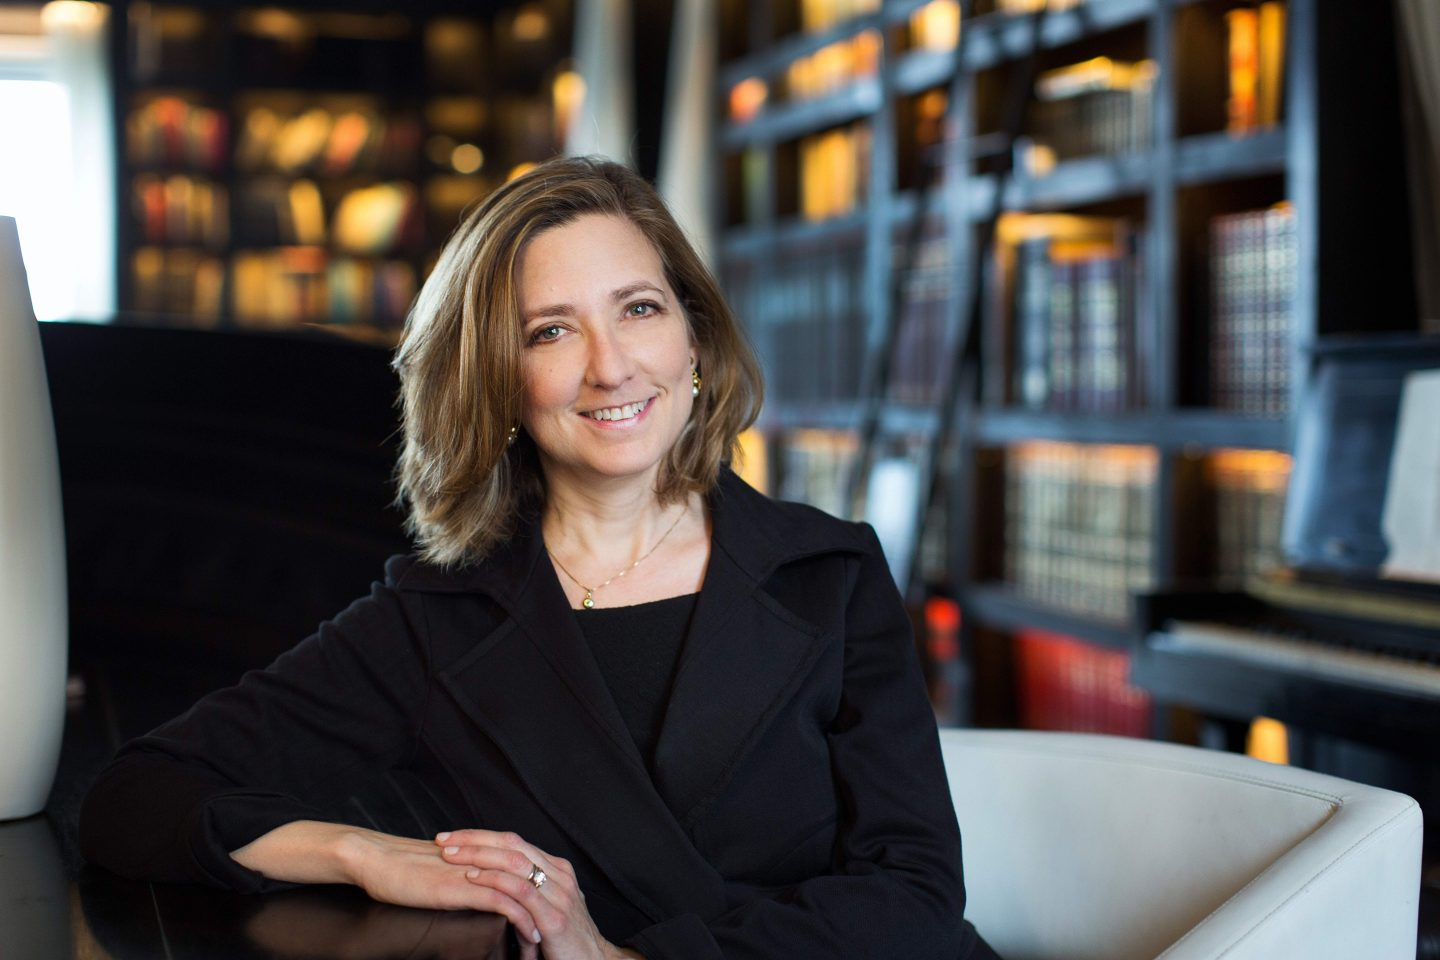 Rhonda Garelick is the new Dean of ADHT at Parsons